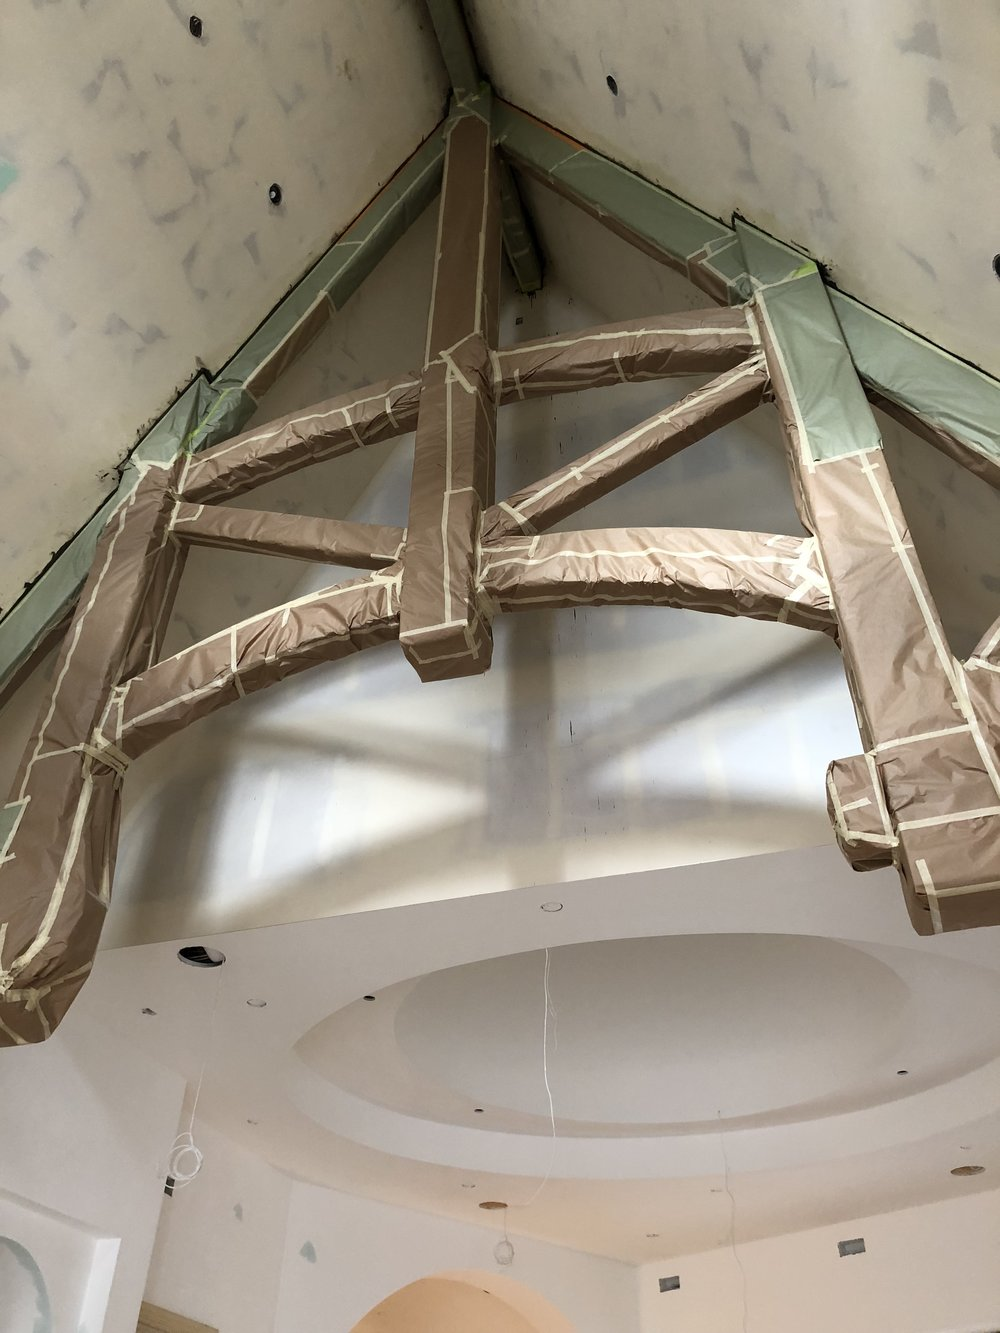 This is the second beam that is part of the same great room space. Just behind it you can see the inside of the largest turret (see our turrets post!) and some of the lighting prep going in!